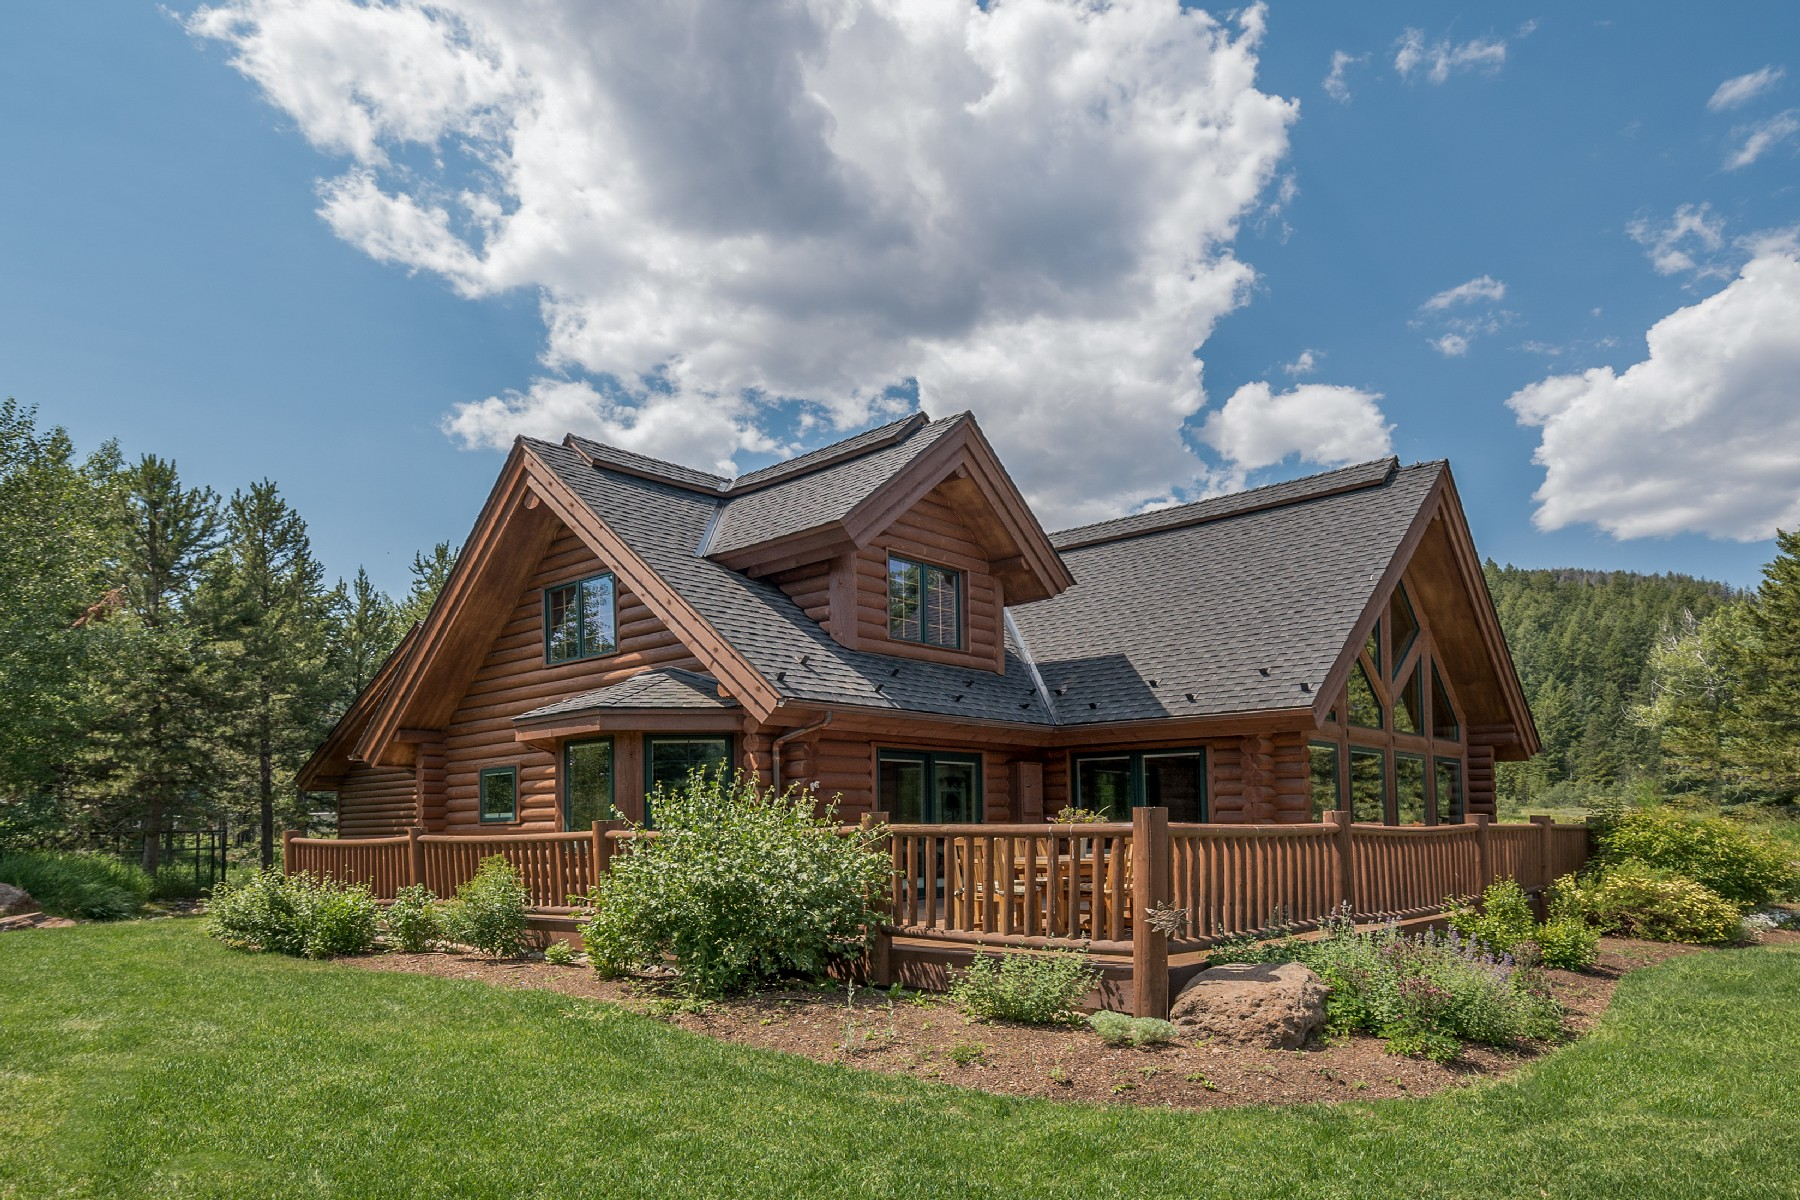 Single Family Home for Sale at The Center Of All Things Idaho 13576 ST HWY 75 Ketchum, Idaho 83340 United States